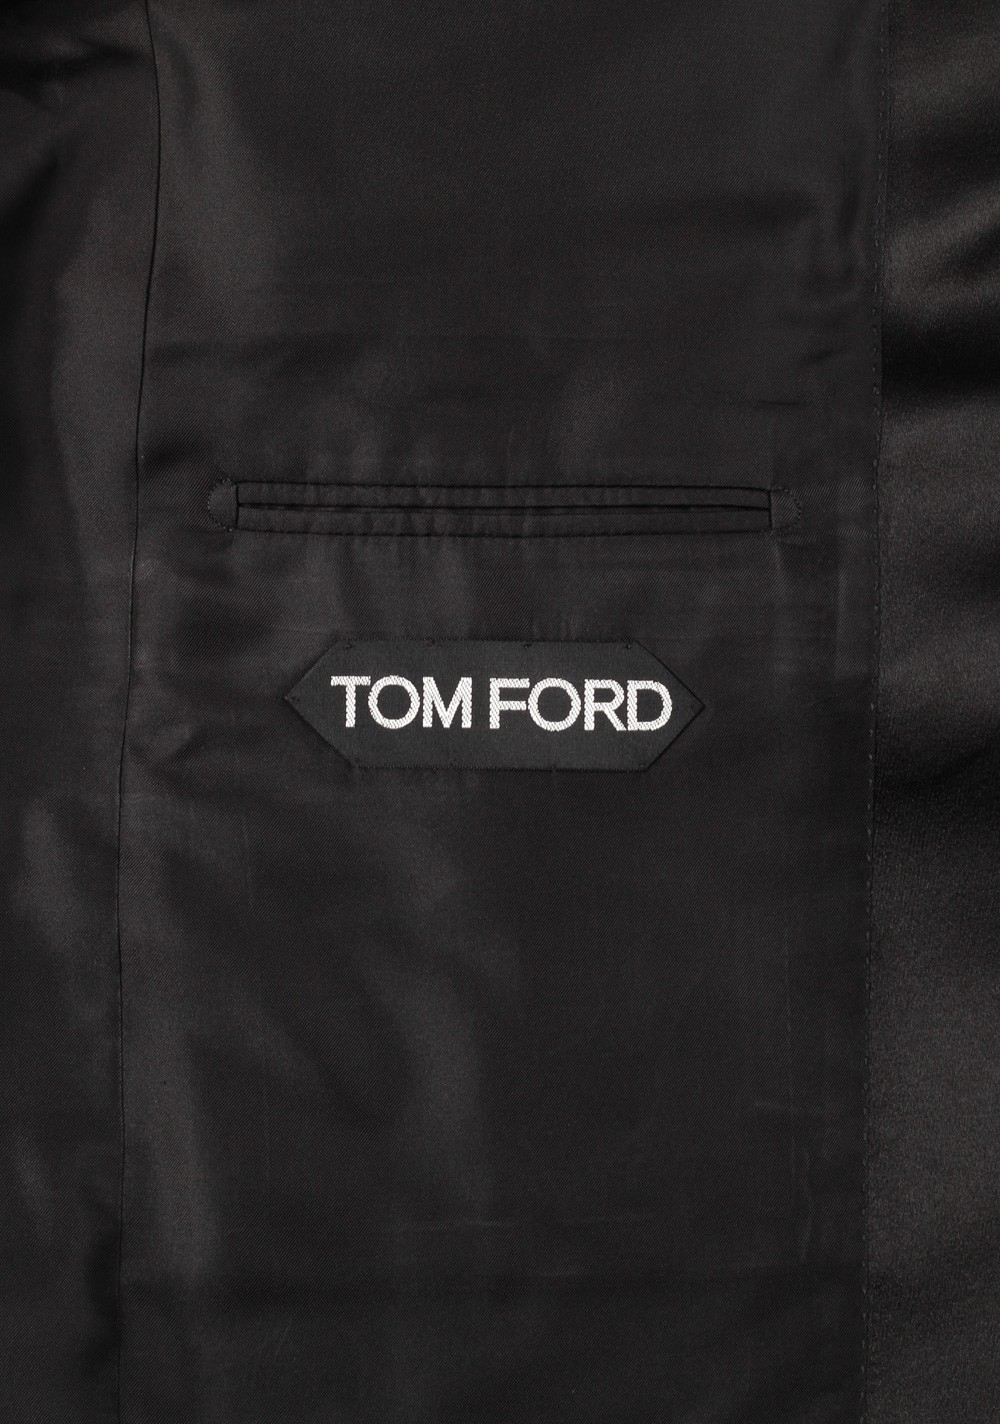 tom ford black tuxedo smoking suit size 58 48r u s. Black Bedroom Furniture Sets. Home Design Ideas